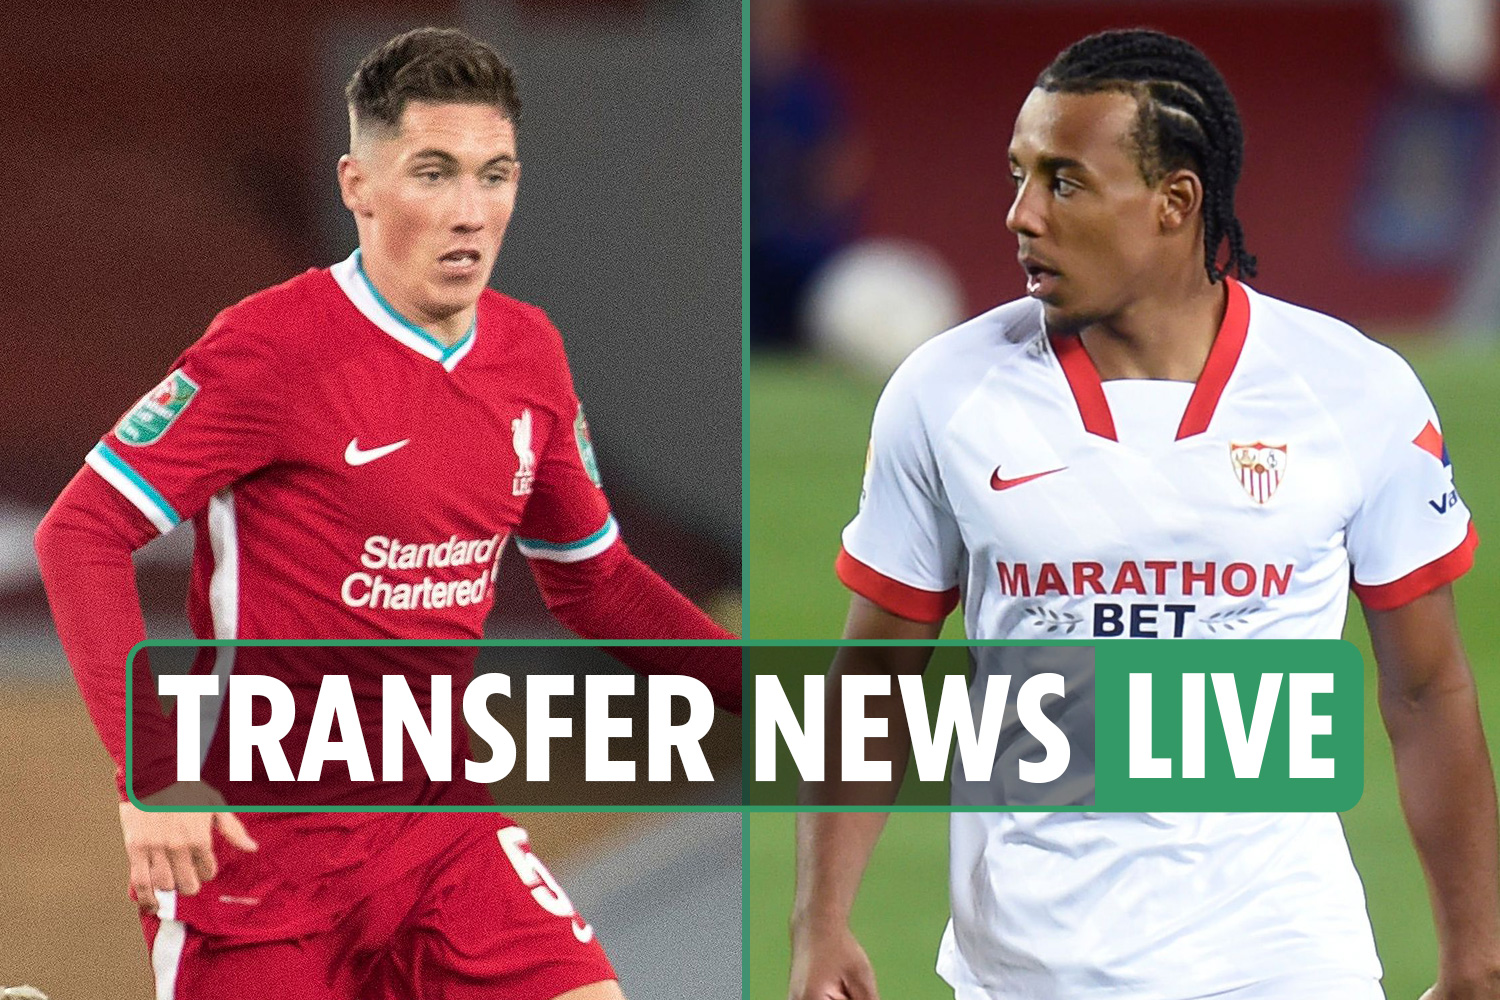 9pm Transfer news LIVE: Benrahma to West Ham COMPLETE, Wilson joins Cardiff on loan, Rodon to Spurs DONE DEAL